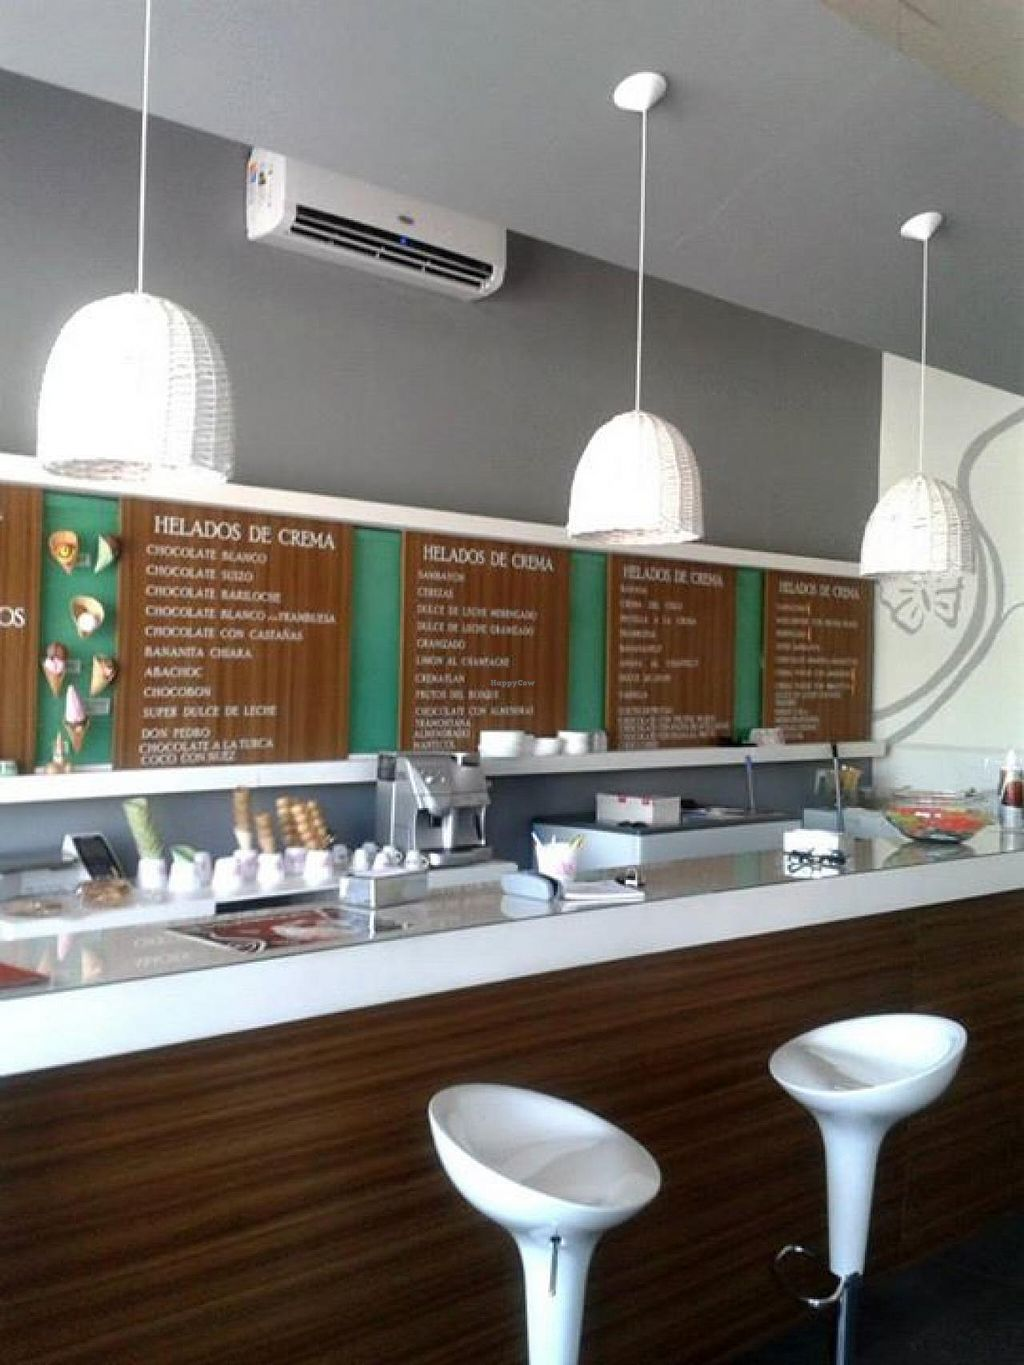 """Photo of Helados La Chiara  by <a href=""""/members/profile/community"""">community</a> <br/>Helados La Chiara <br/> October 9, 2014  - <a href='/contact/abuse/image/51951/82505'>Report</a>"""